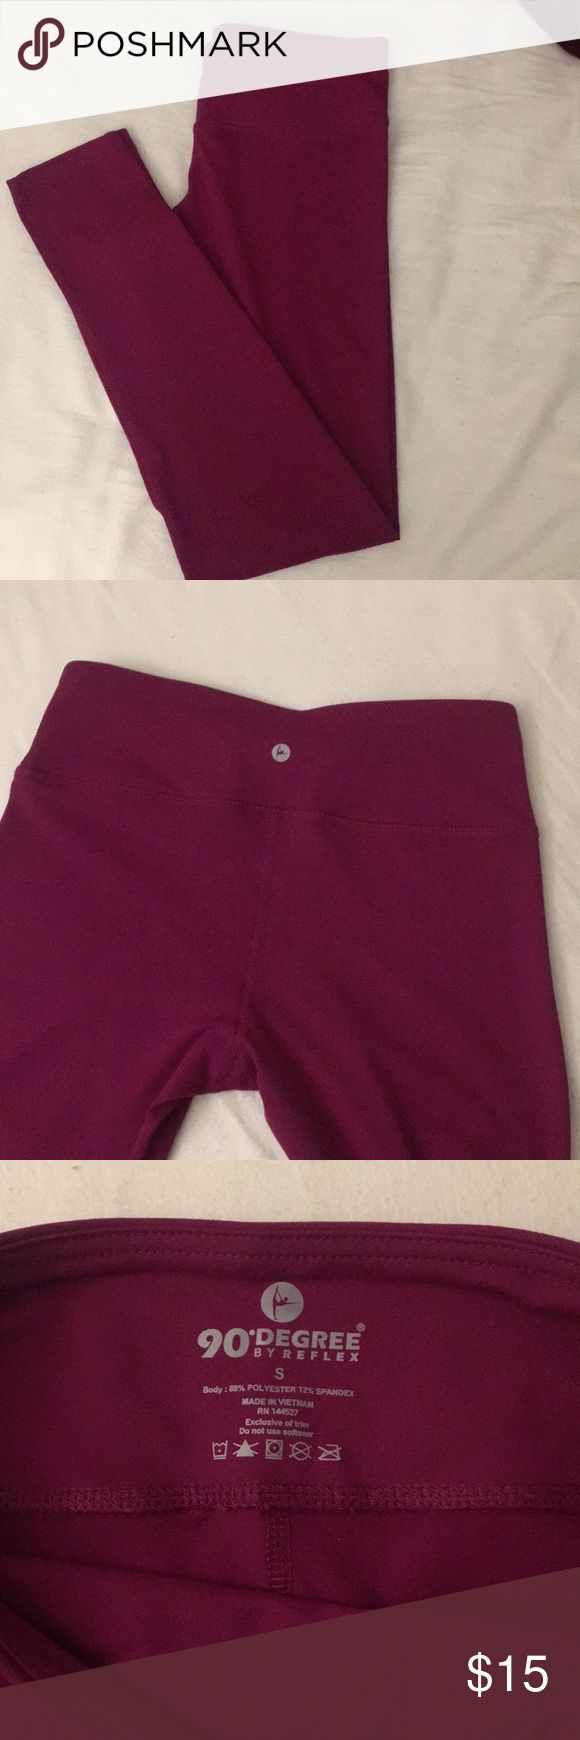 Deep pink-purple gym leggings Never worn. Basic stretchy gym leggings. Size small was too loose on me, unfortunately. 90 Degree By Reflex Pants Leggings